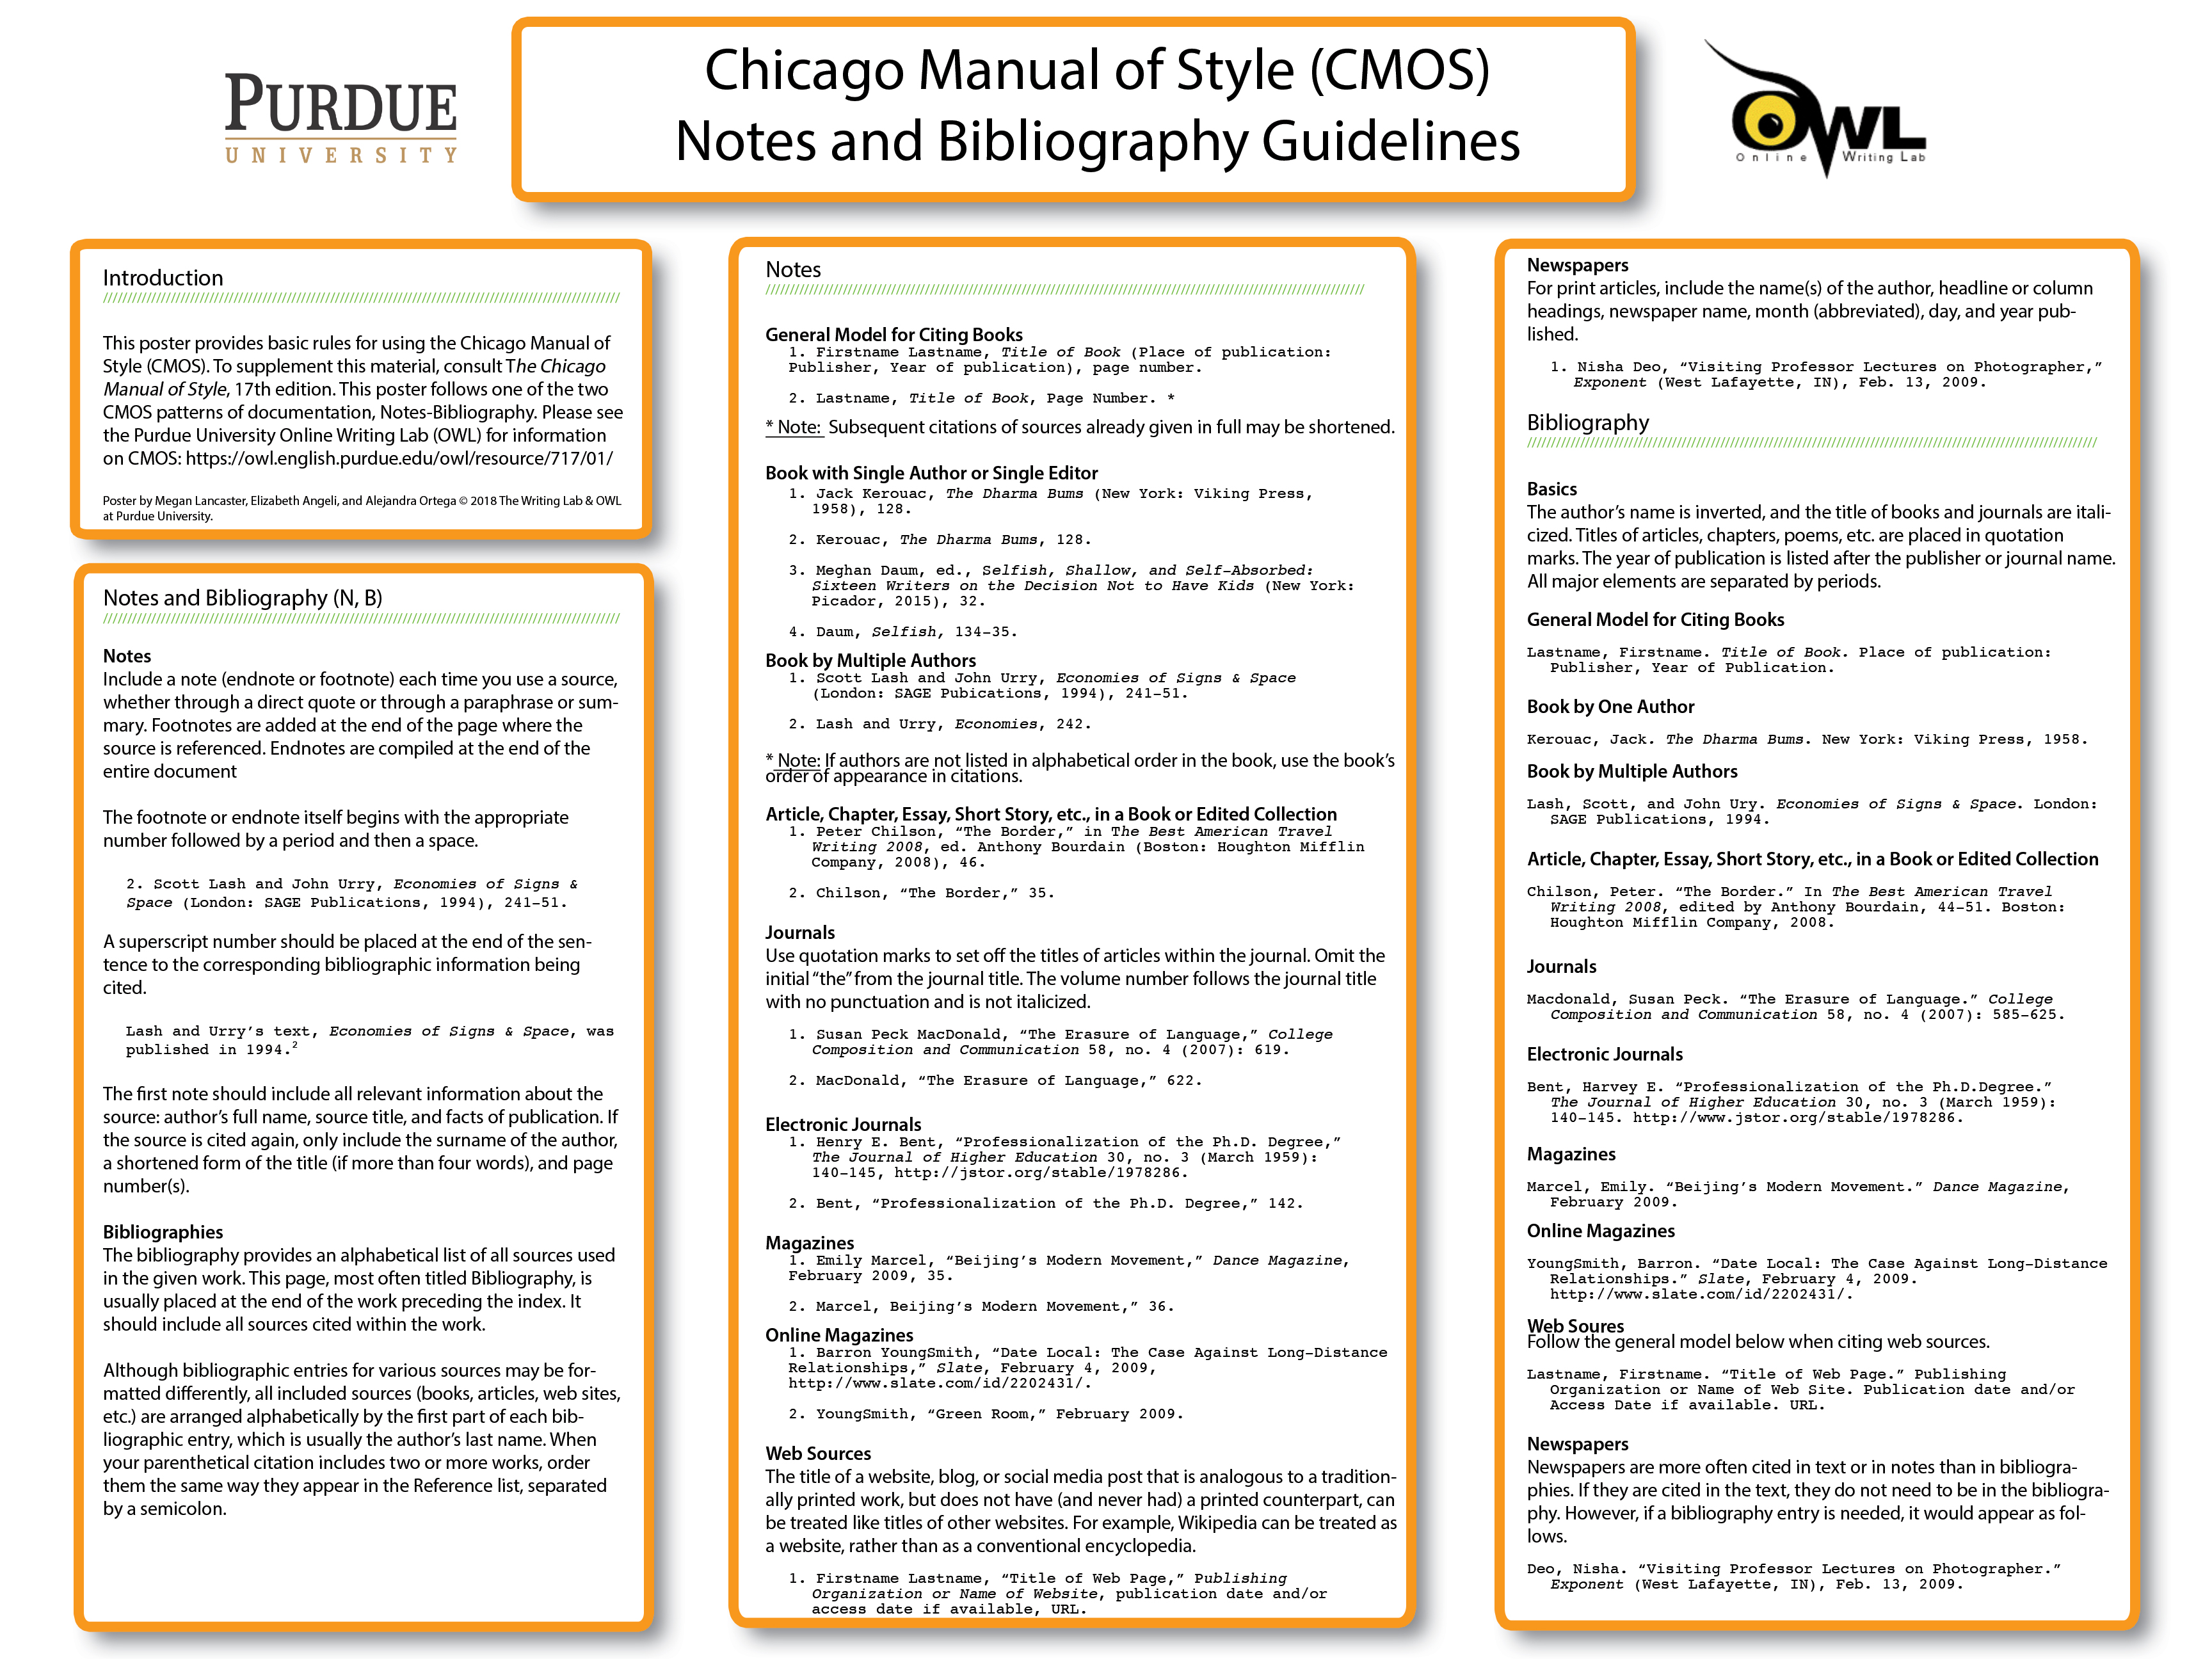 example of style guide in a document